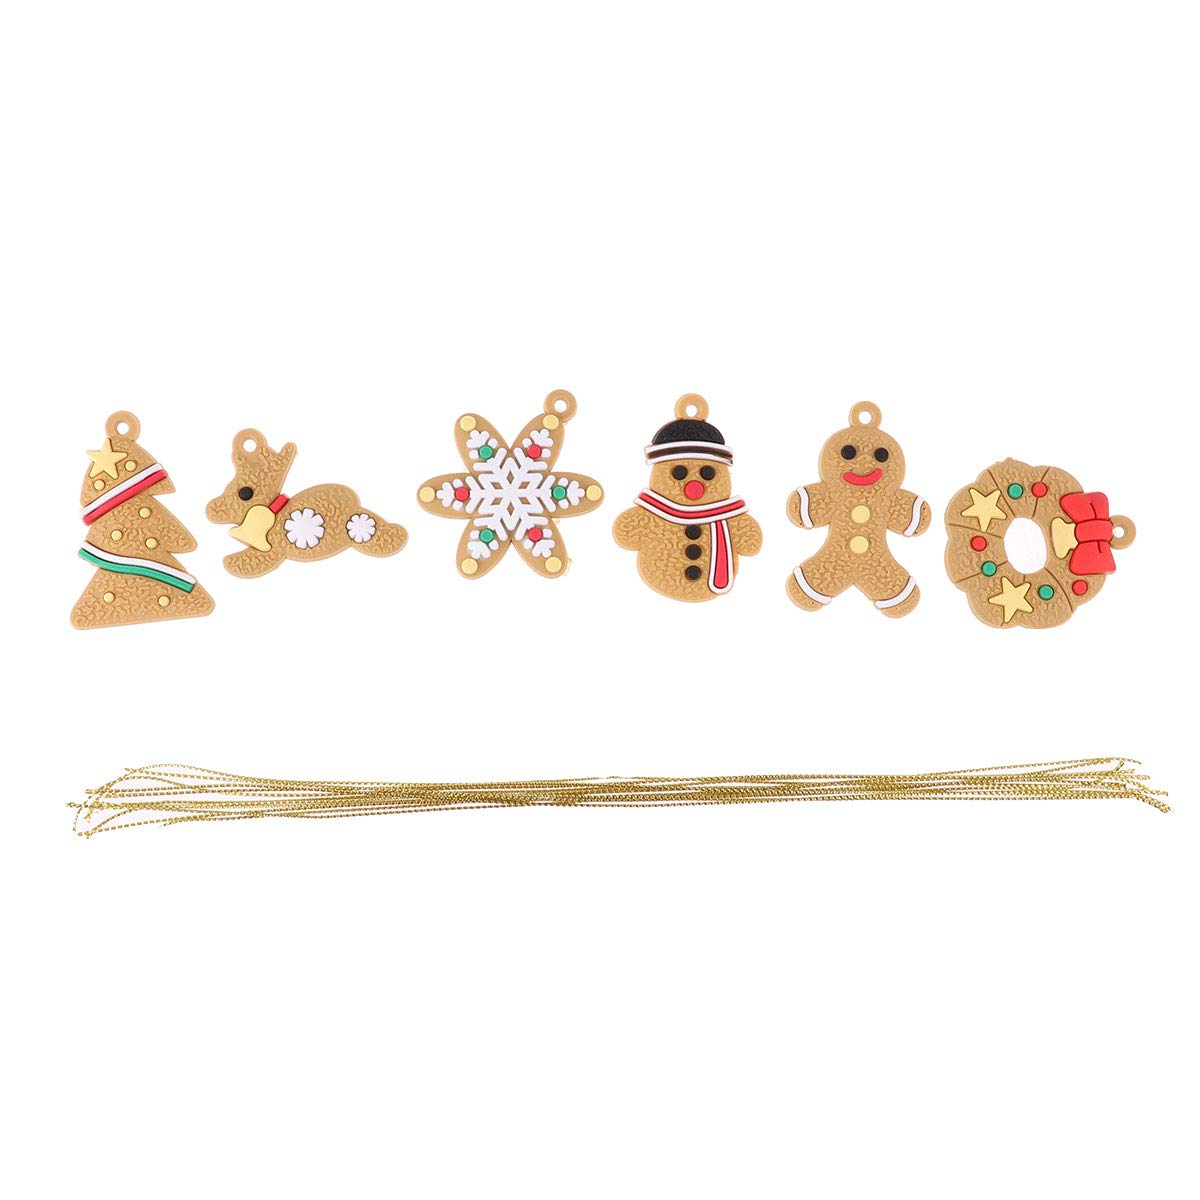 IEFIEL Traditional Gingerbread Clay Figurine Ornaments Gingerman Hanging Charms Christmas Tree Ornaments B One Size